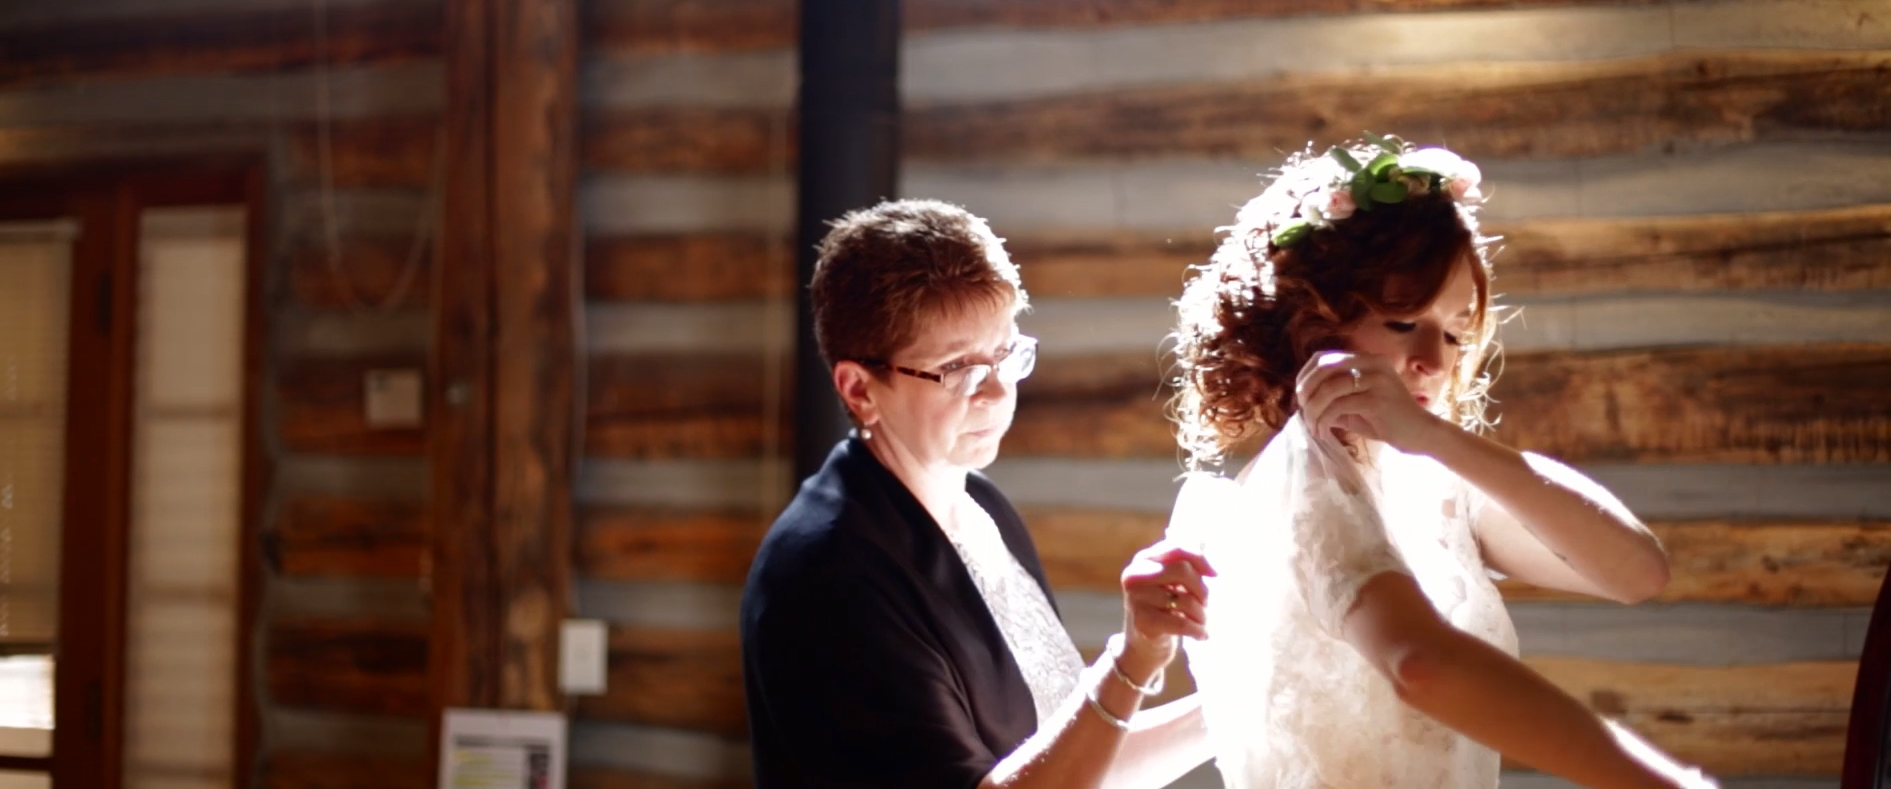 The light was so beautiful while Danielle put her dress on.